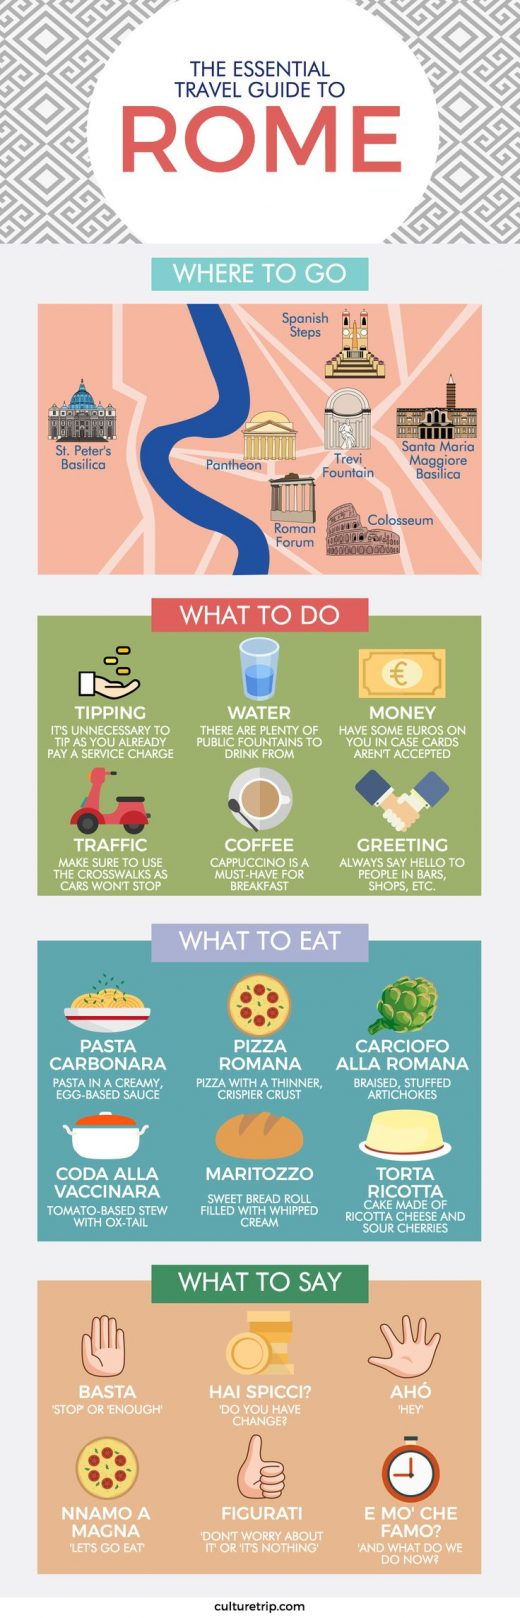 The Essential Travel Guide to Rome (Infographic)